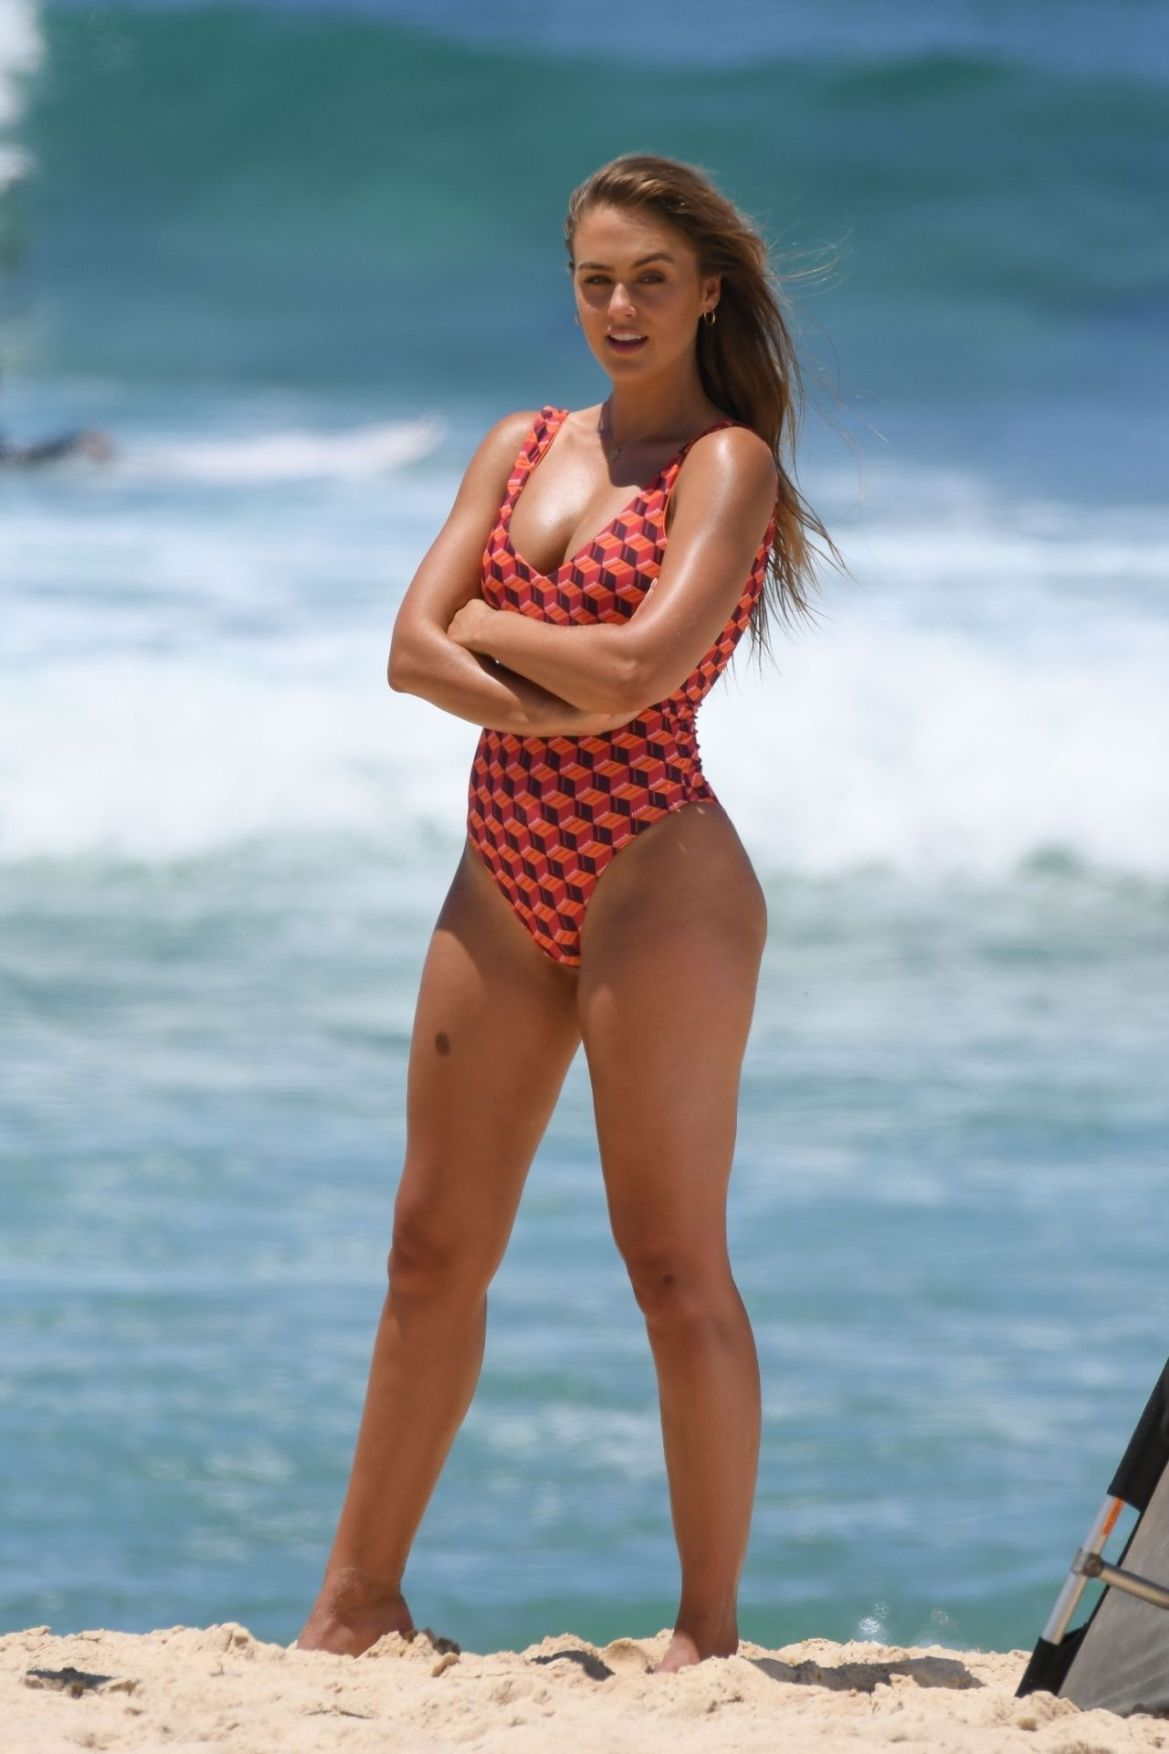 Steph Claire Bikini and Swimsuit Photoshoot, December 2018